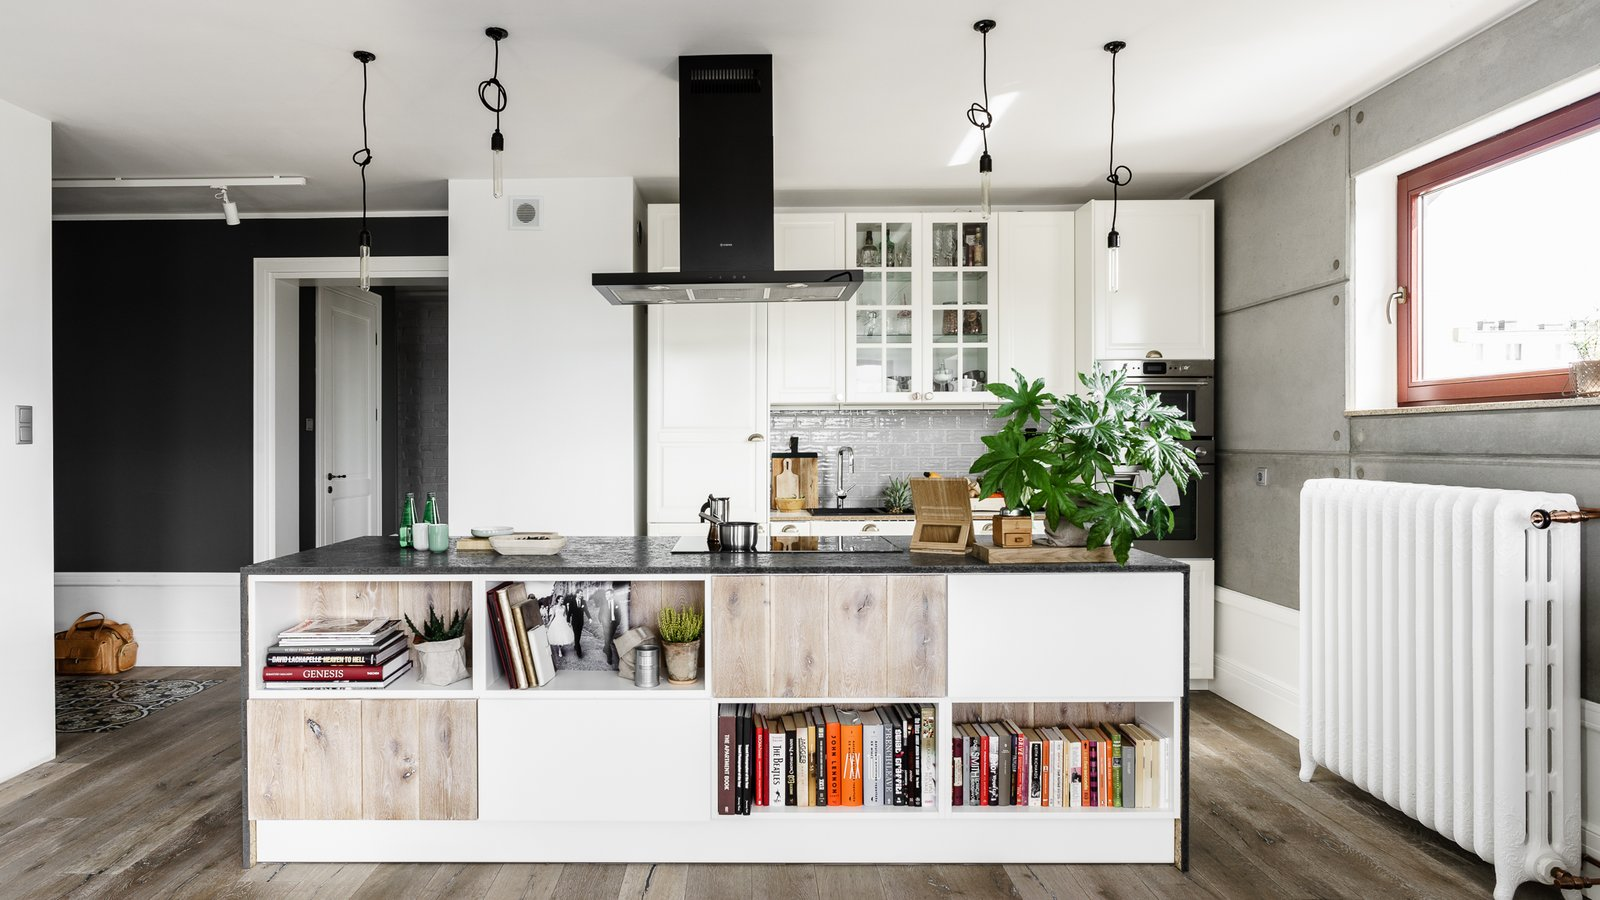 Kitchen, Medium Hardwood Floor, Granite Counter, Glass Tile Backsplashe, White Cabinet, Cooktops, Pendant Lighting, Range Hood, and Subway Tile Backsplashe  Super Cool Kitchen Islands by Erika Heet from Loft in Poland